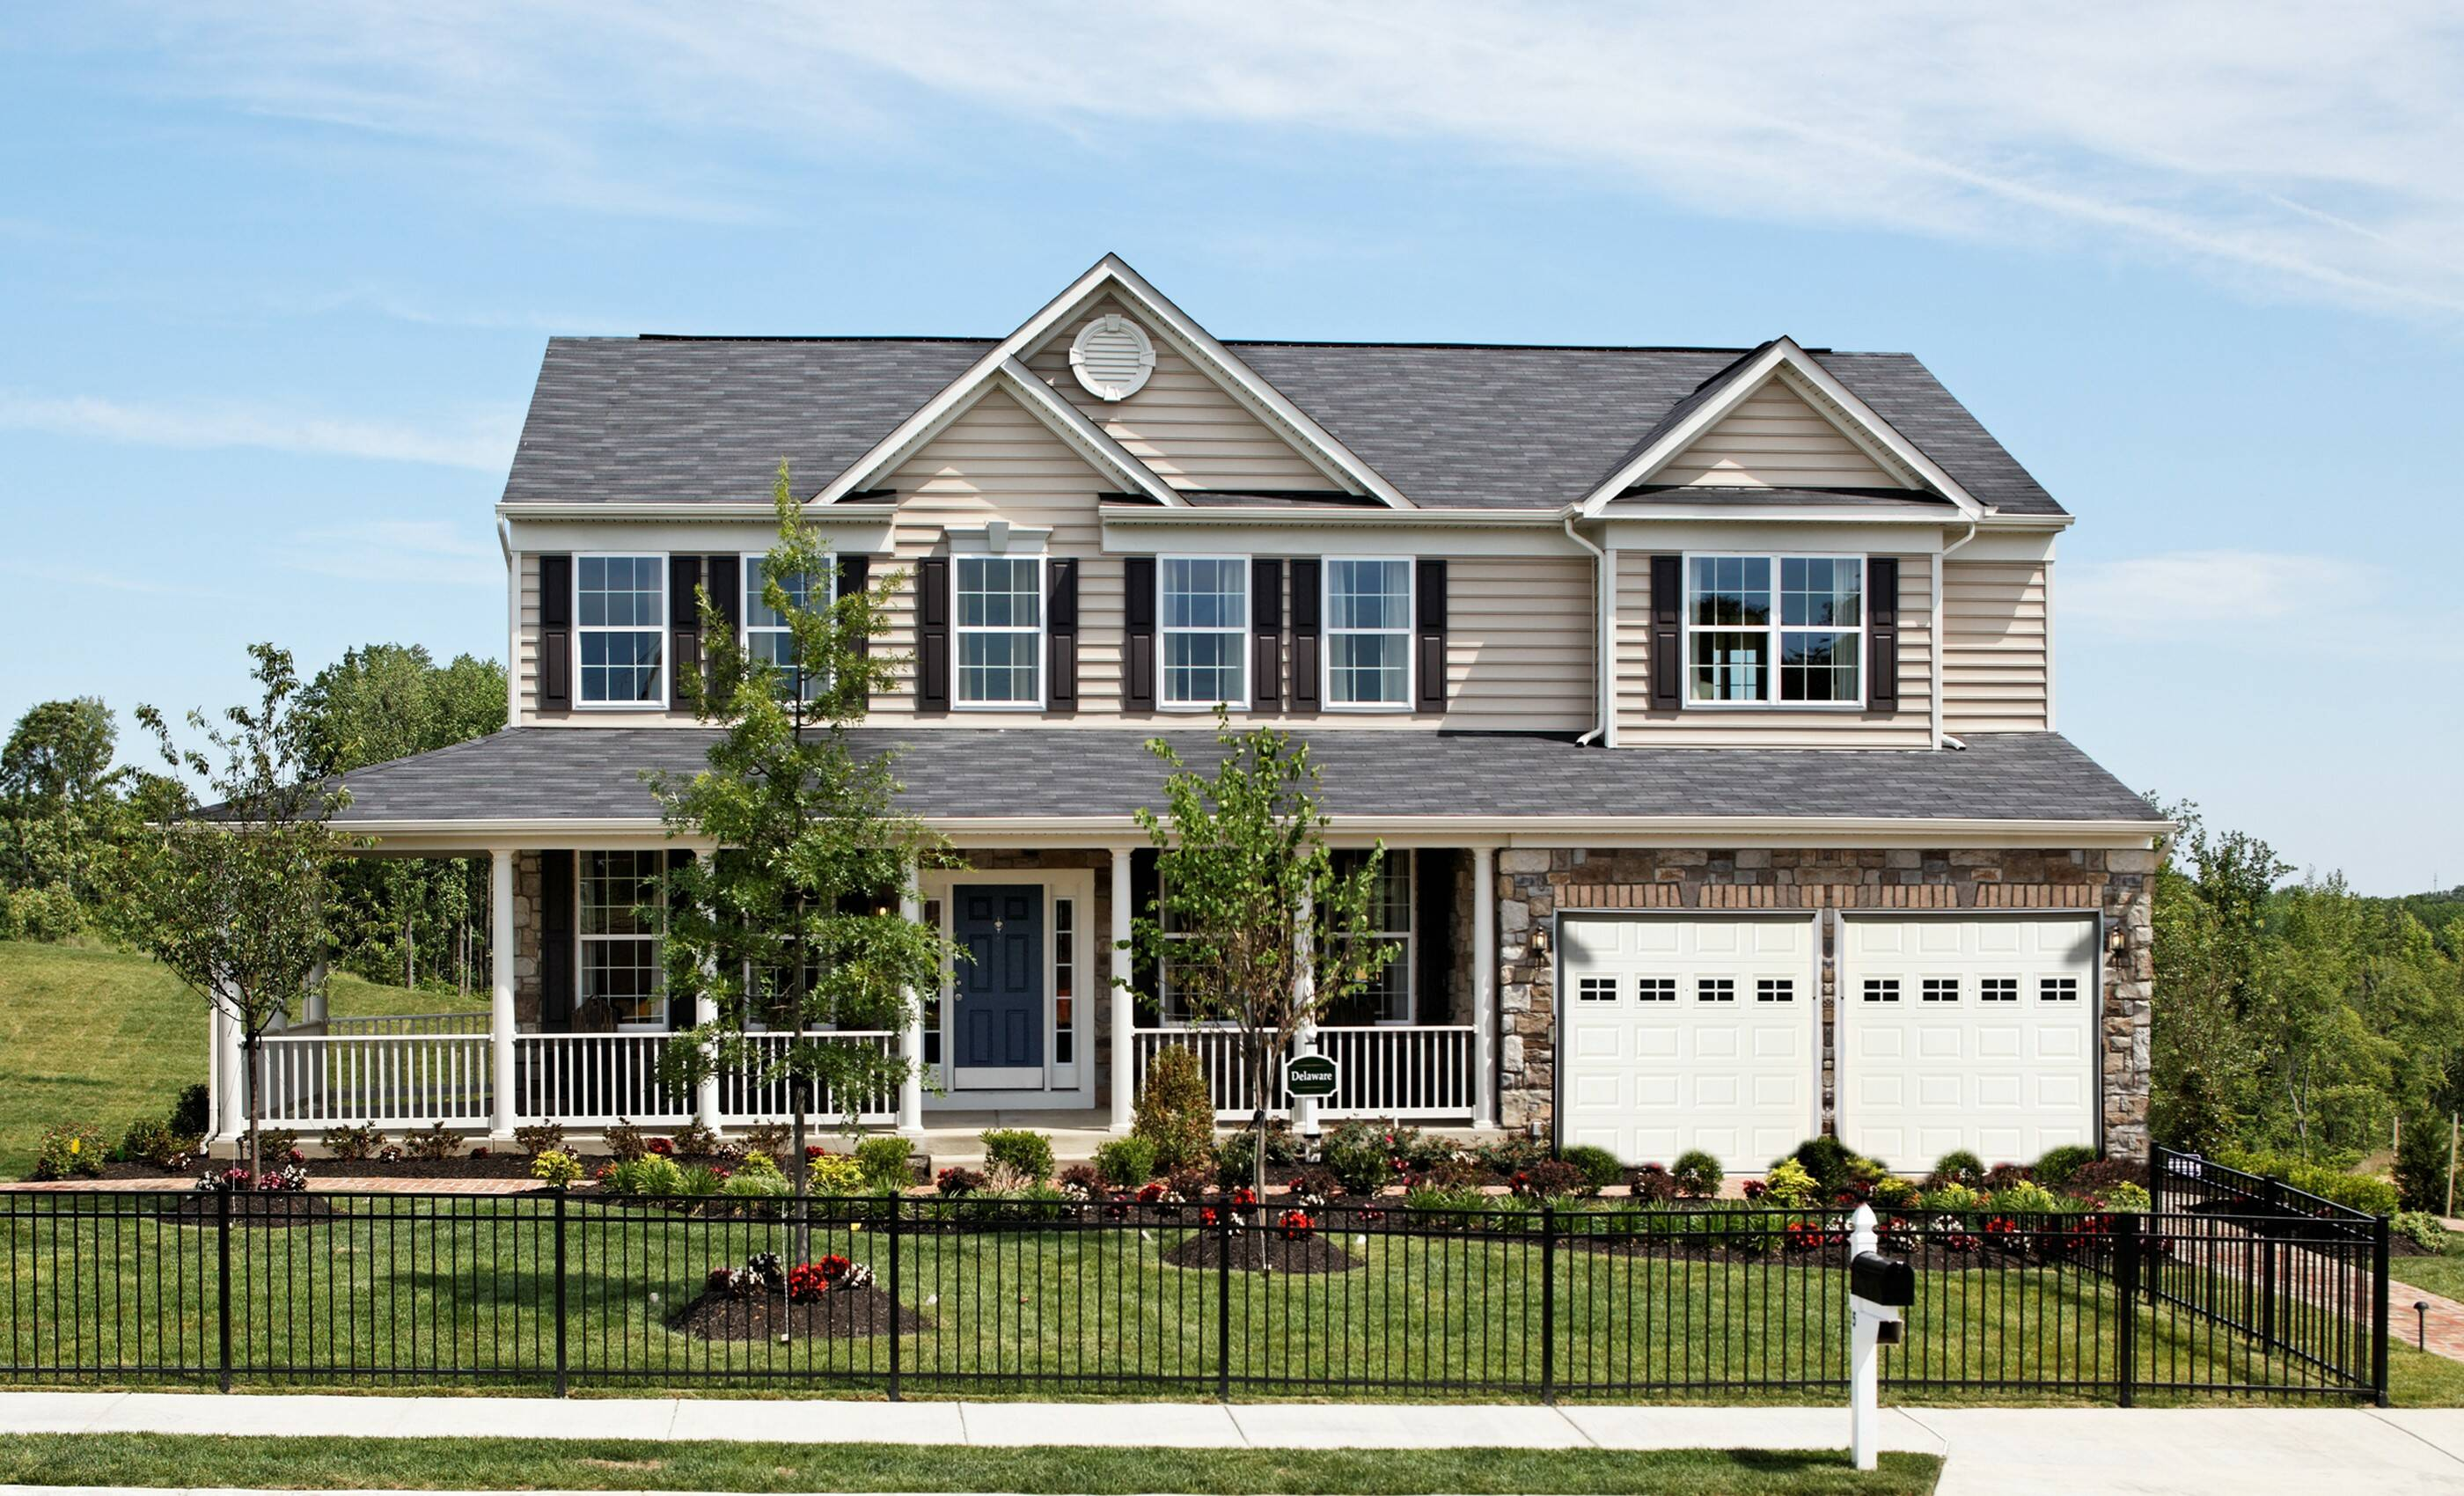 K hovnanian homes floor plans virginia for Virginia farmhouse plans